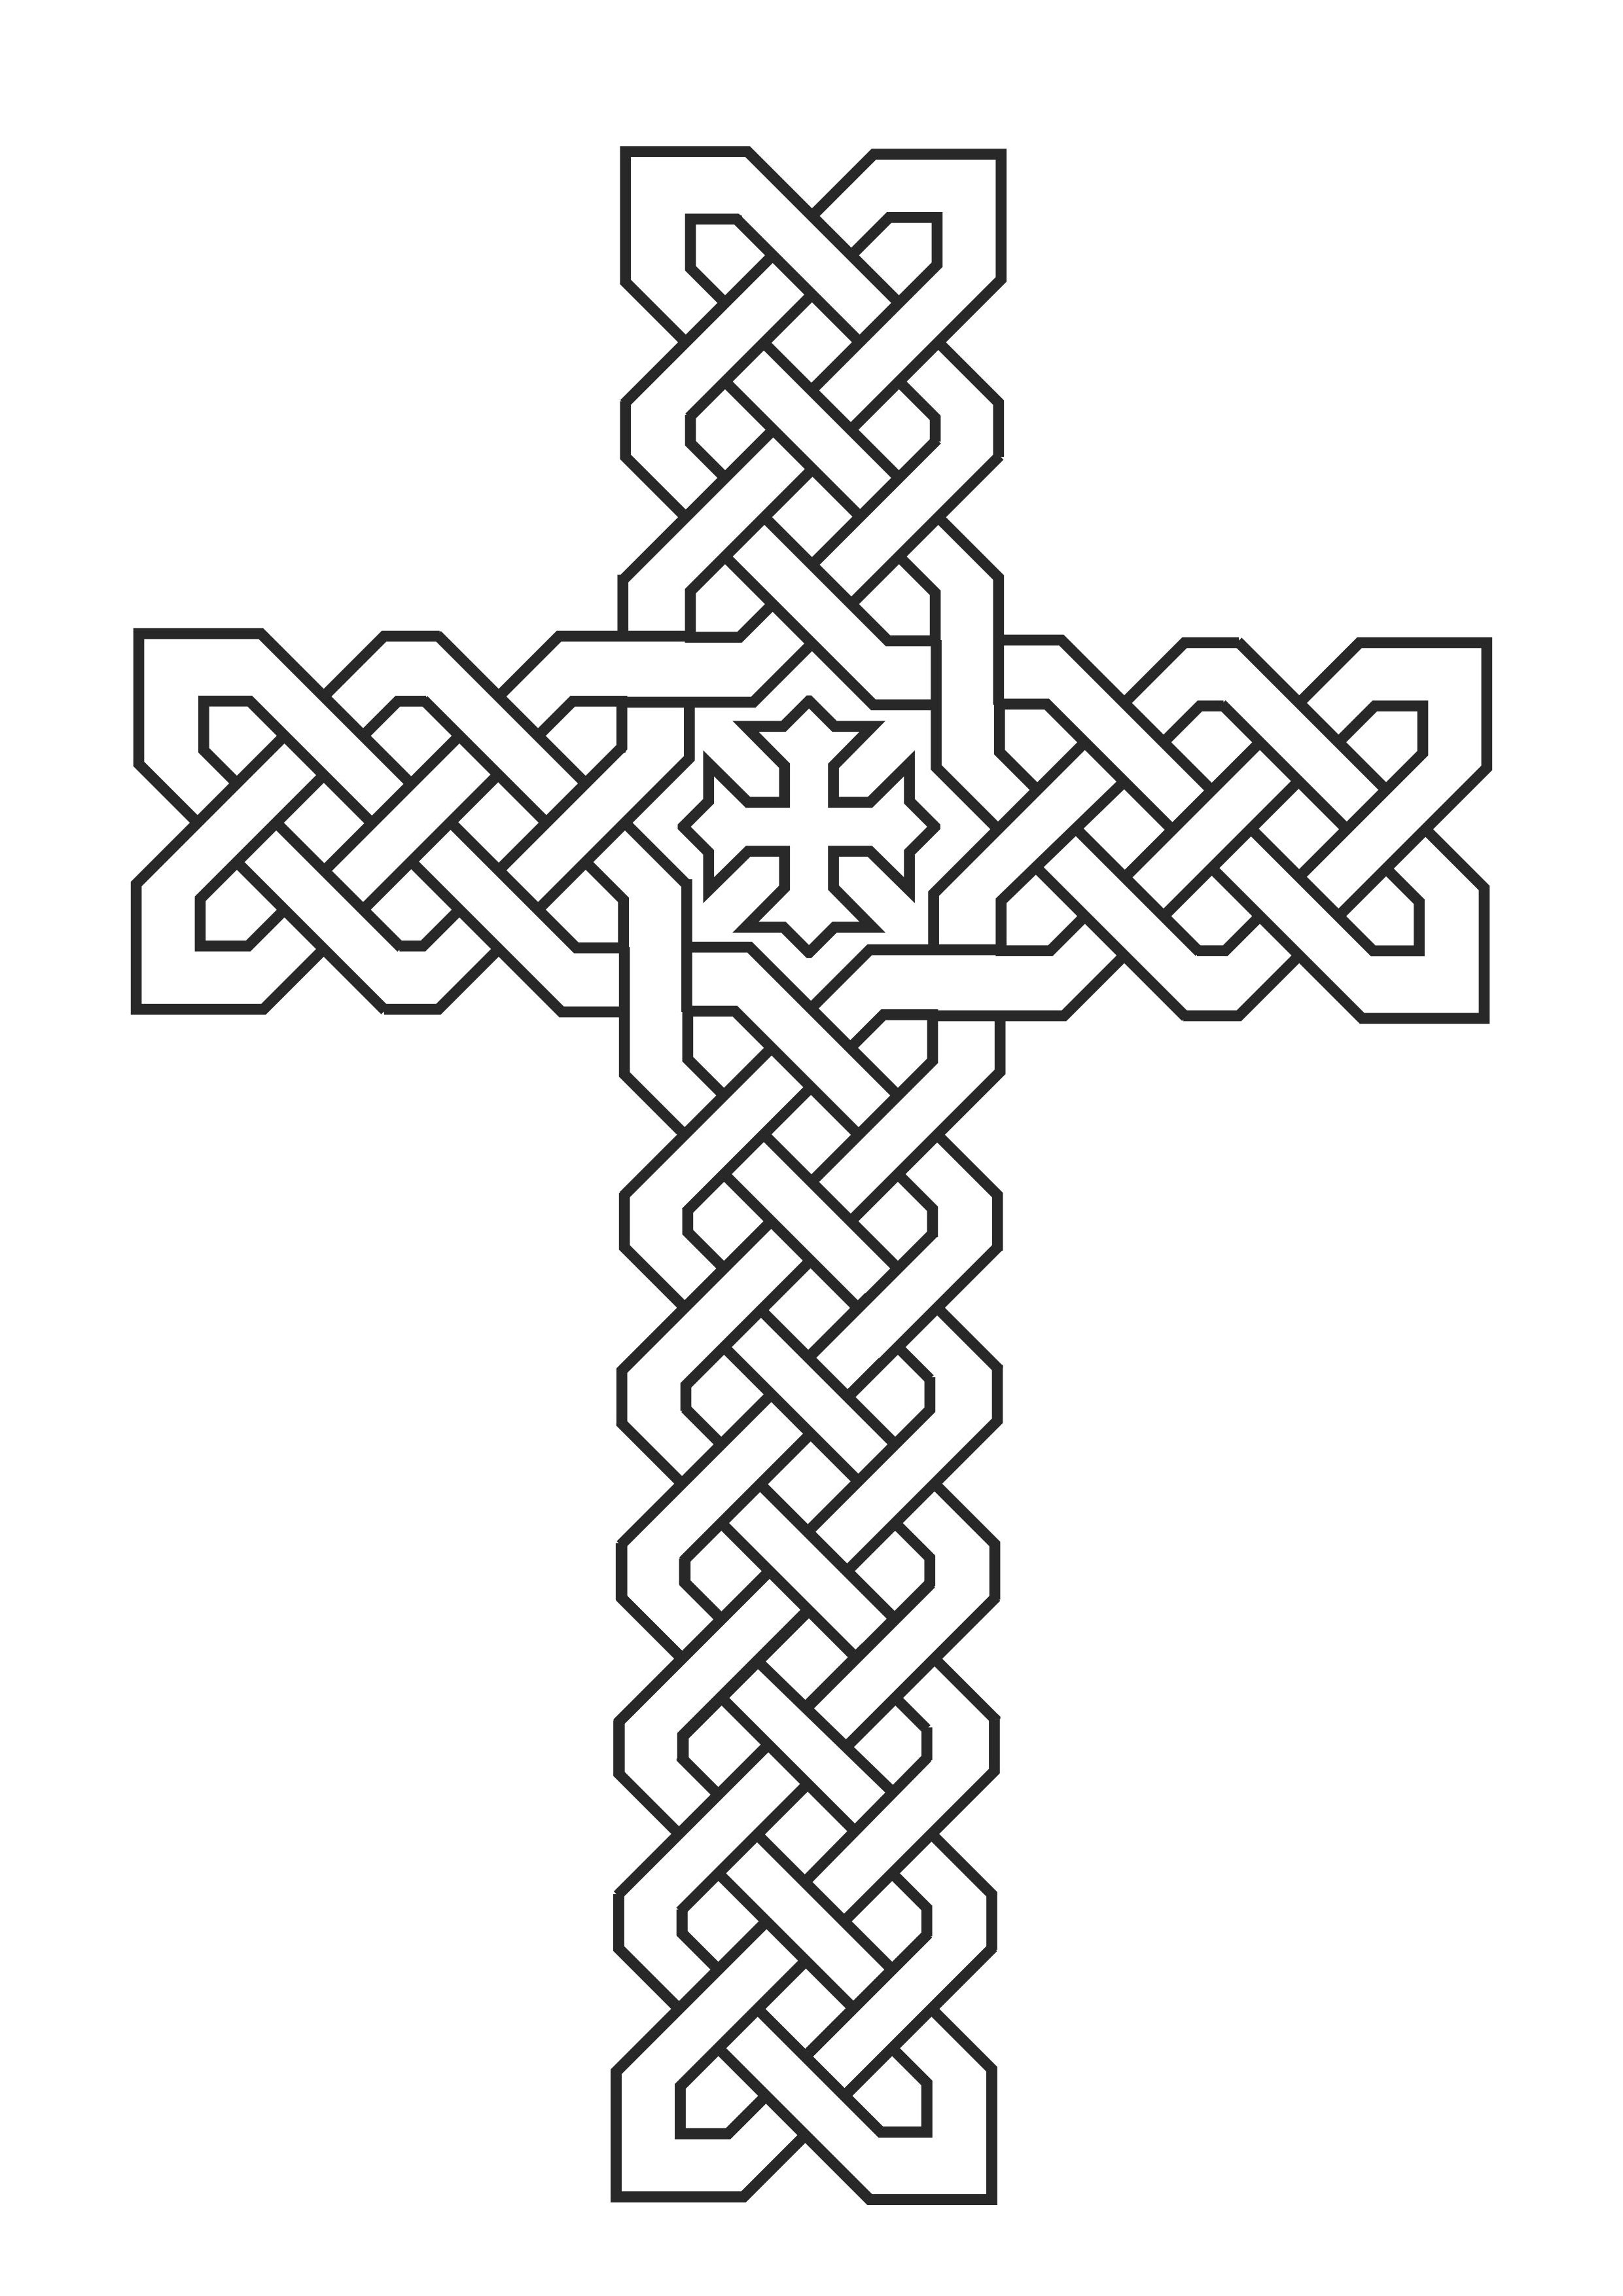 Bible Verse Coloring Pages For Adults at GetColoringscom